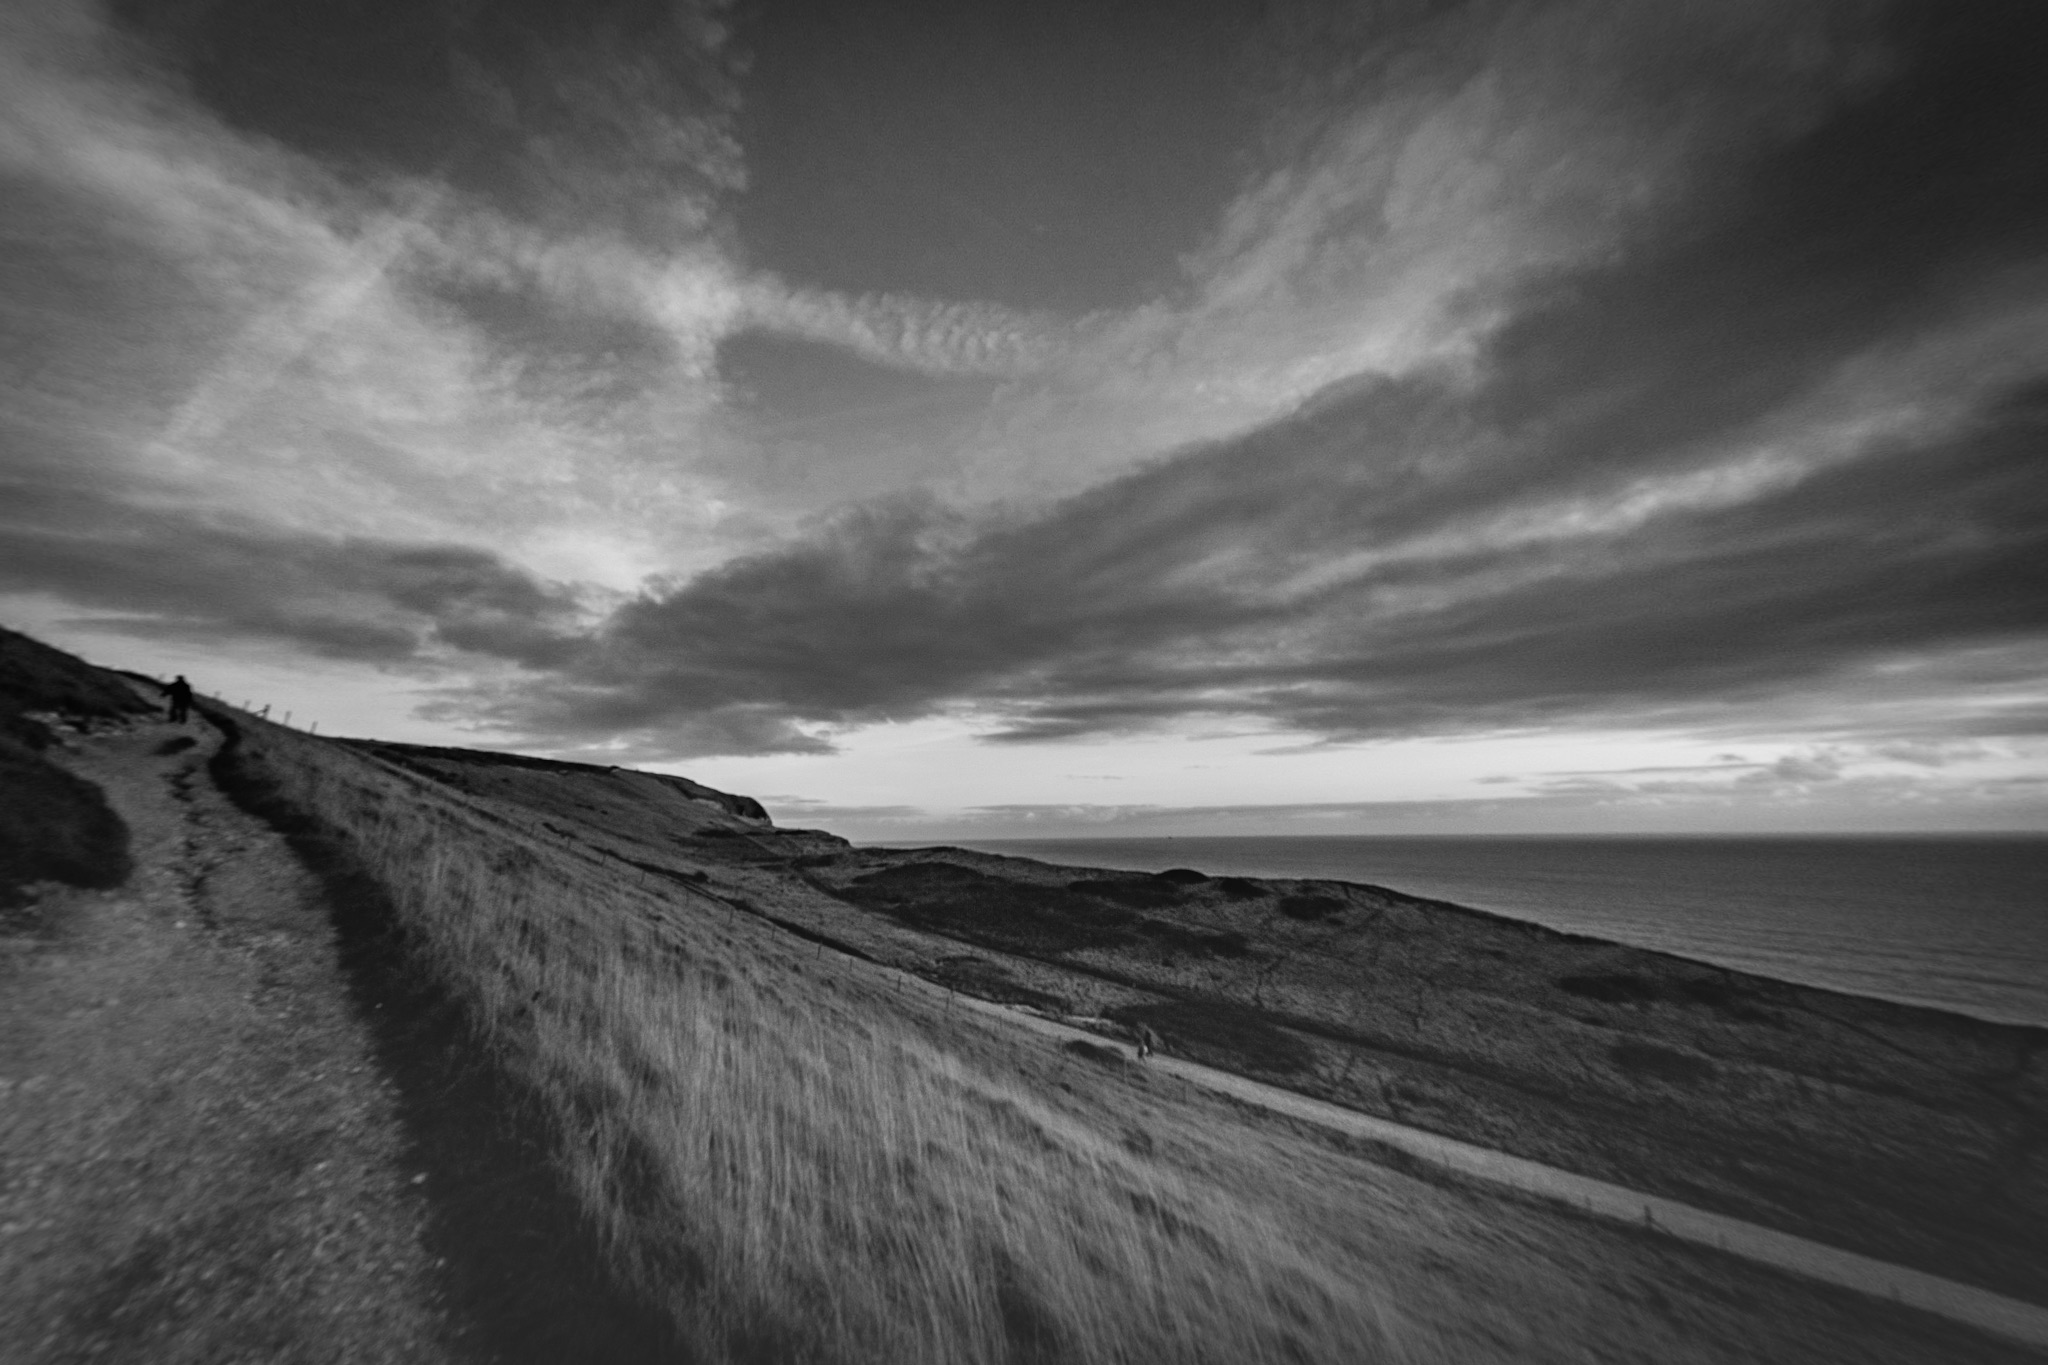 Black and white landsacpe photography in Dorset by Rick McEvoy